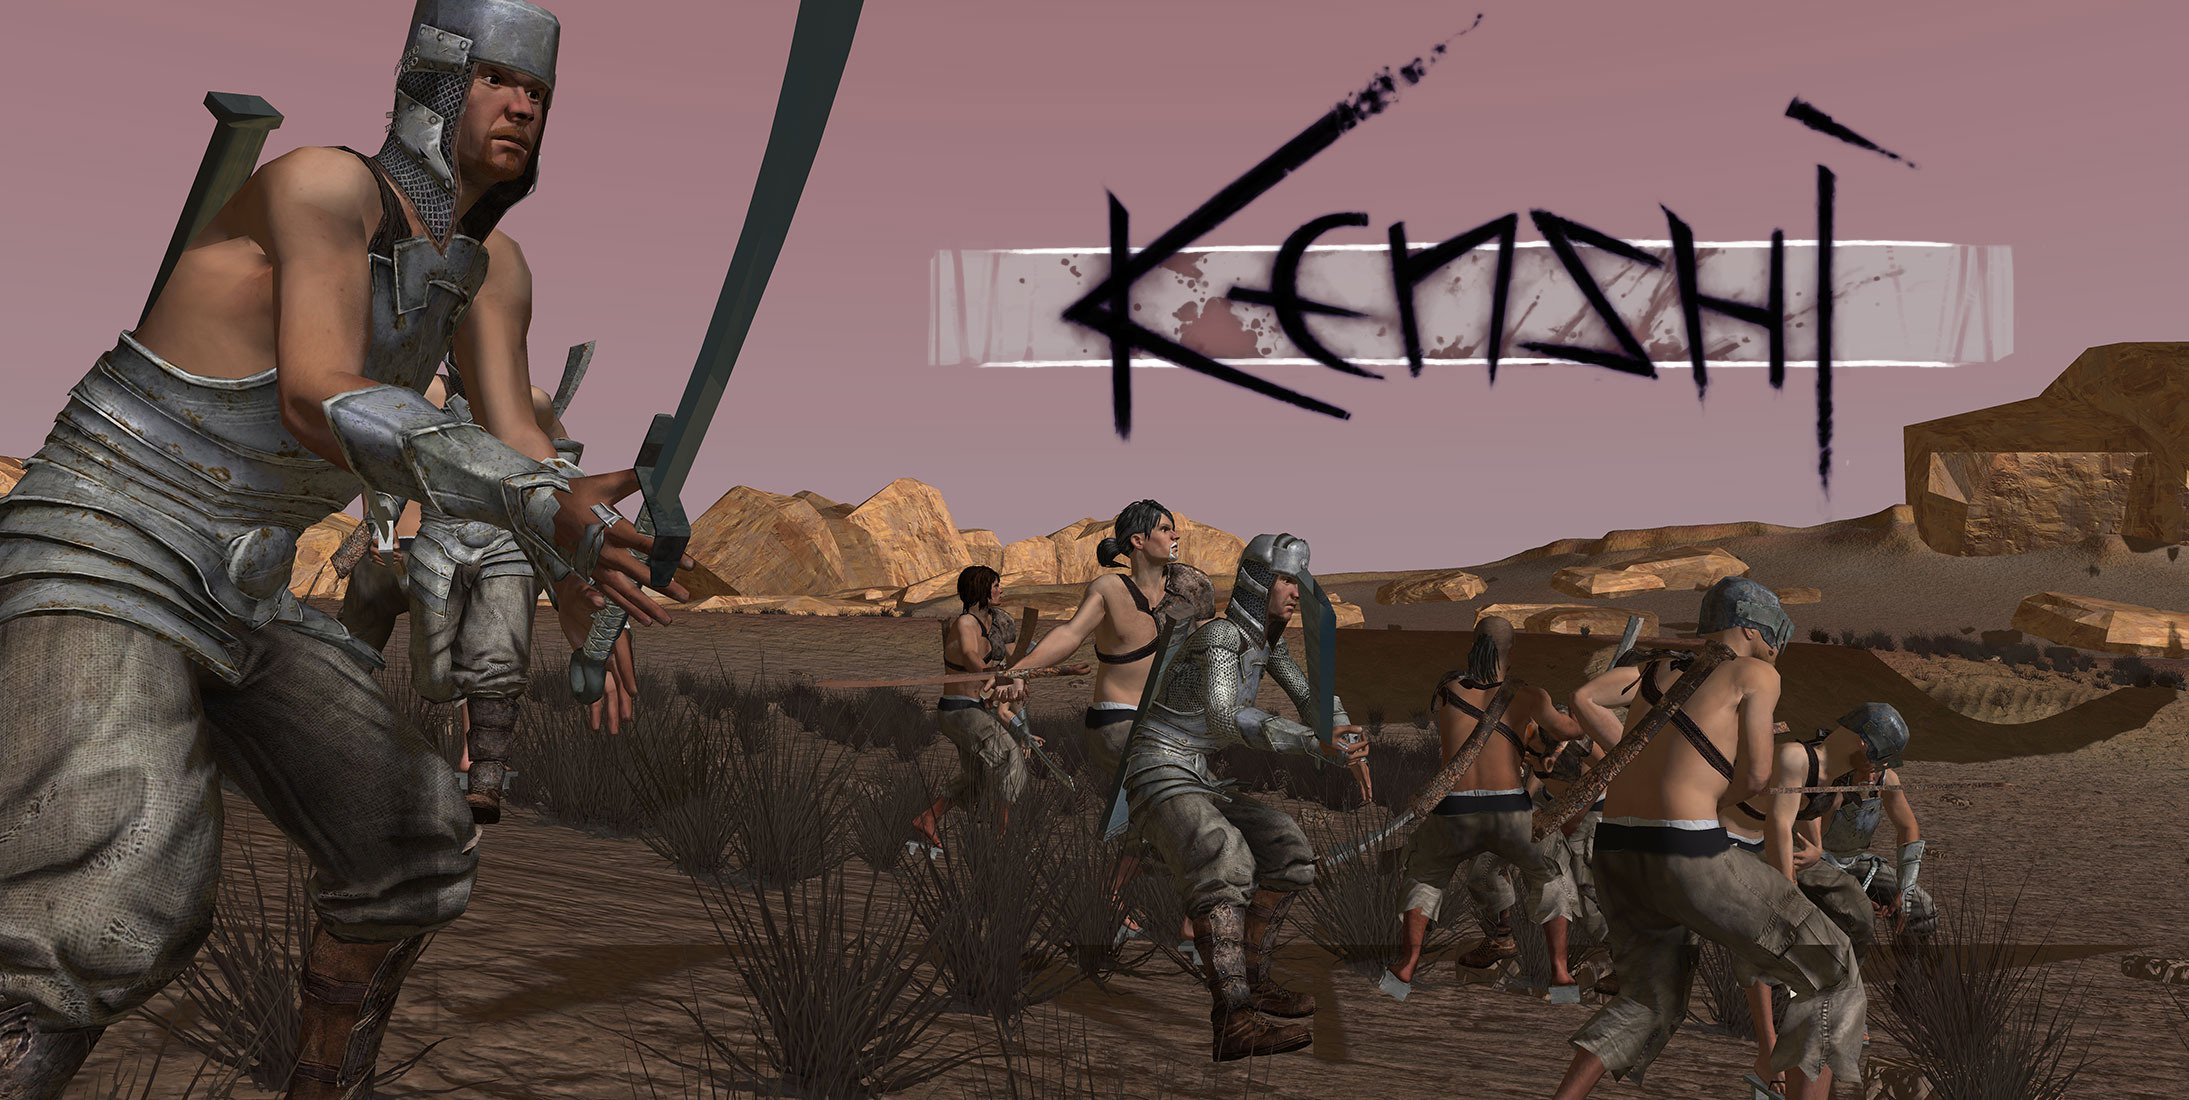 Enter The Sprawling Sandbox Open World In Kenshi, A 'Sword-Punk' Survival RPG Releasing On PC